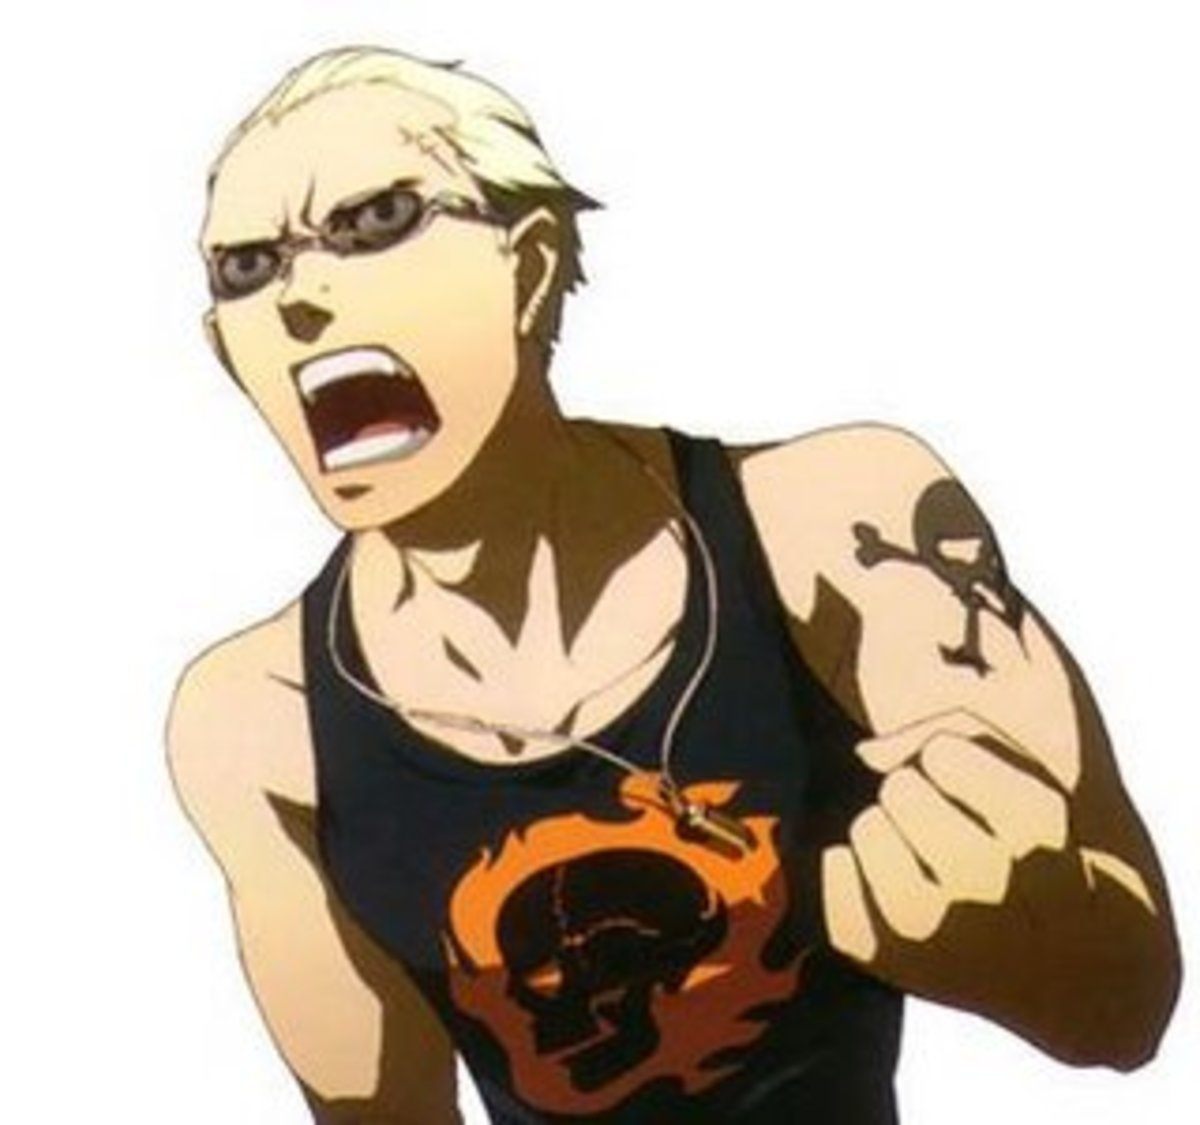 Kanji: Pretty much definitely gay, don't fight me on this